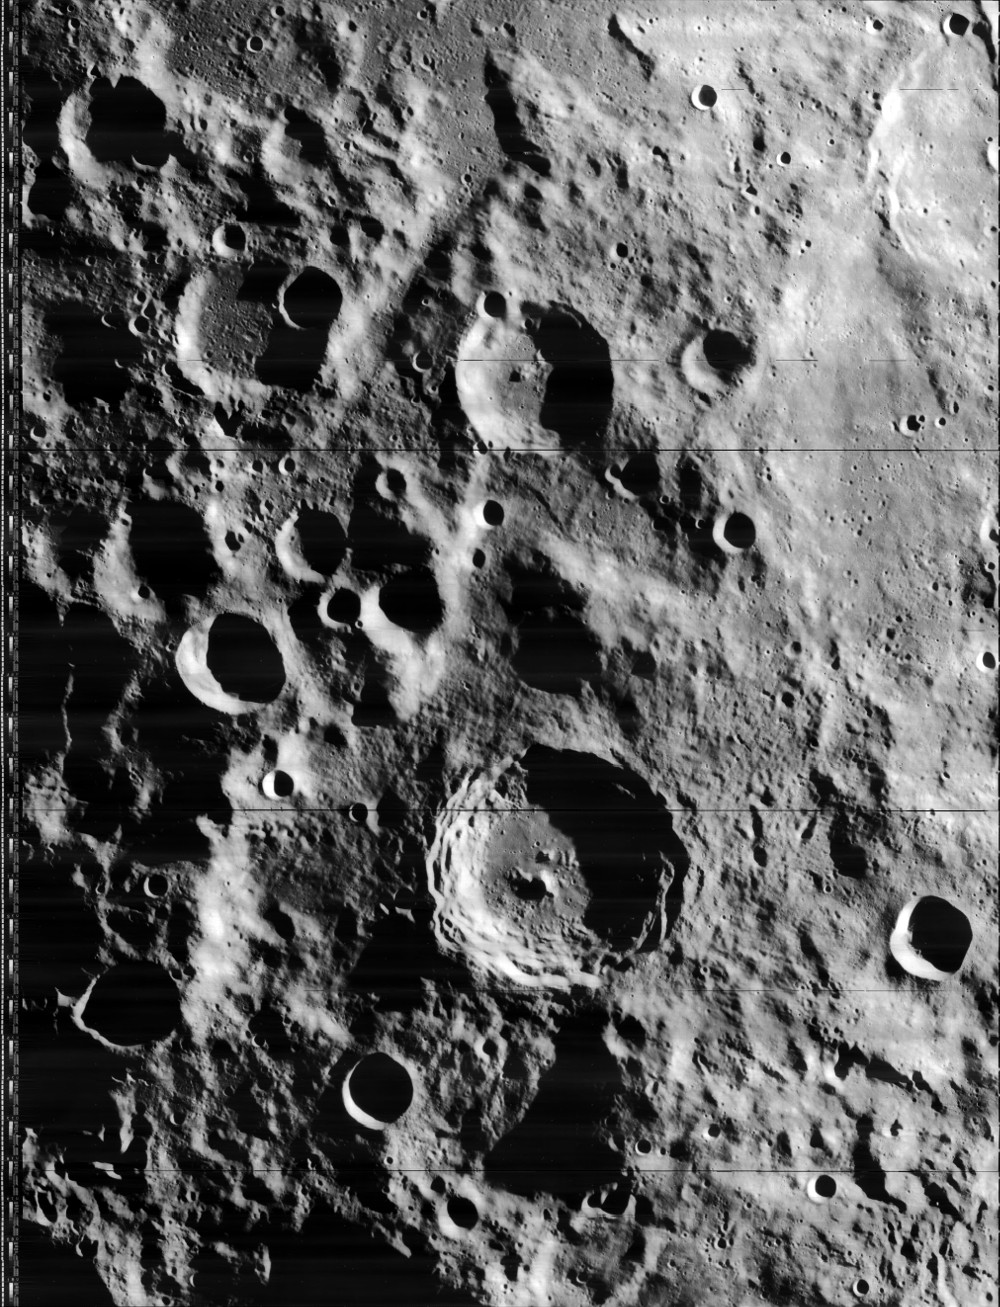 Mapping the Moon The Mission of Lunar Orbiter 4  Drew Ex Machina